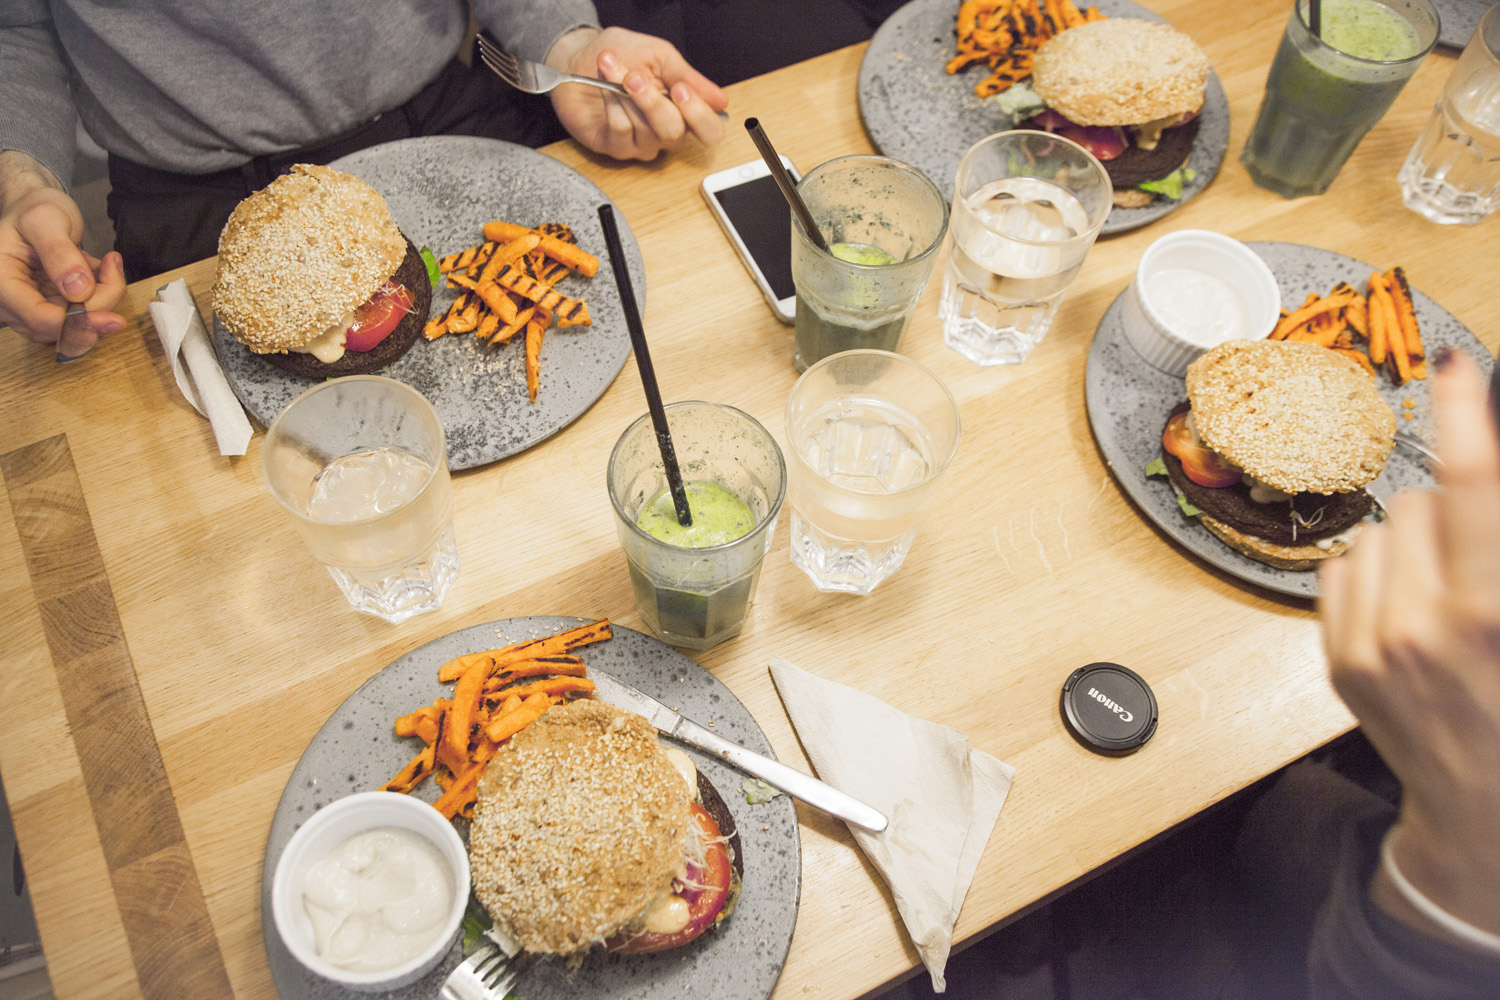 Healthy Restaurants In Copenhagen by Vilma P.